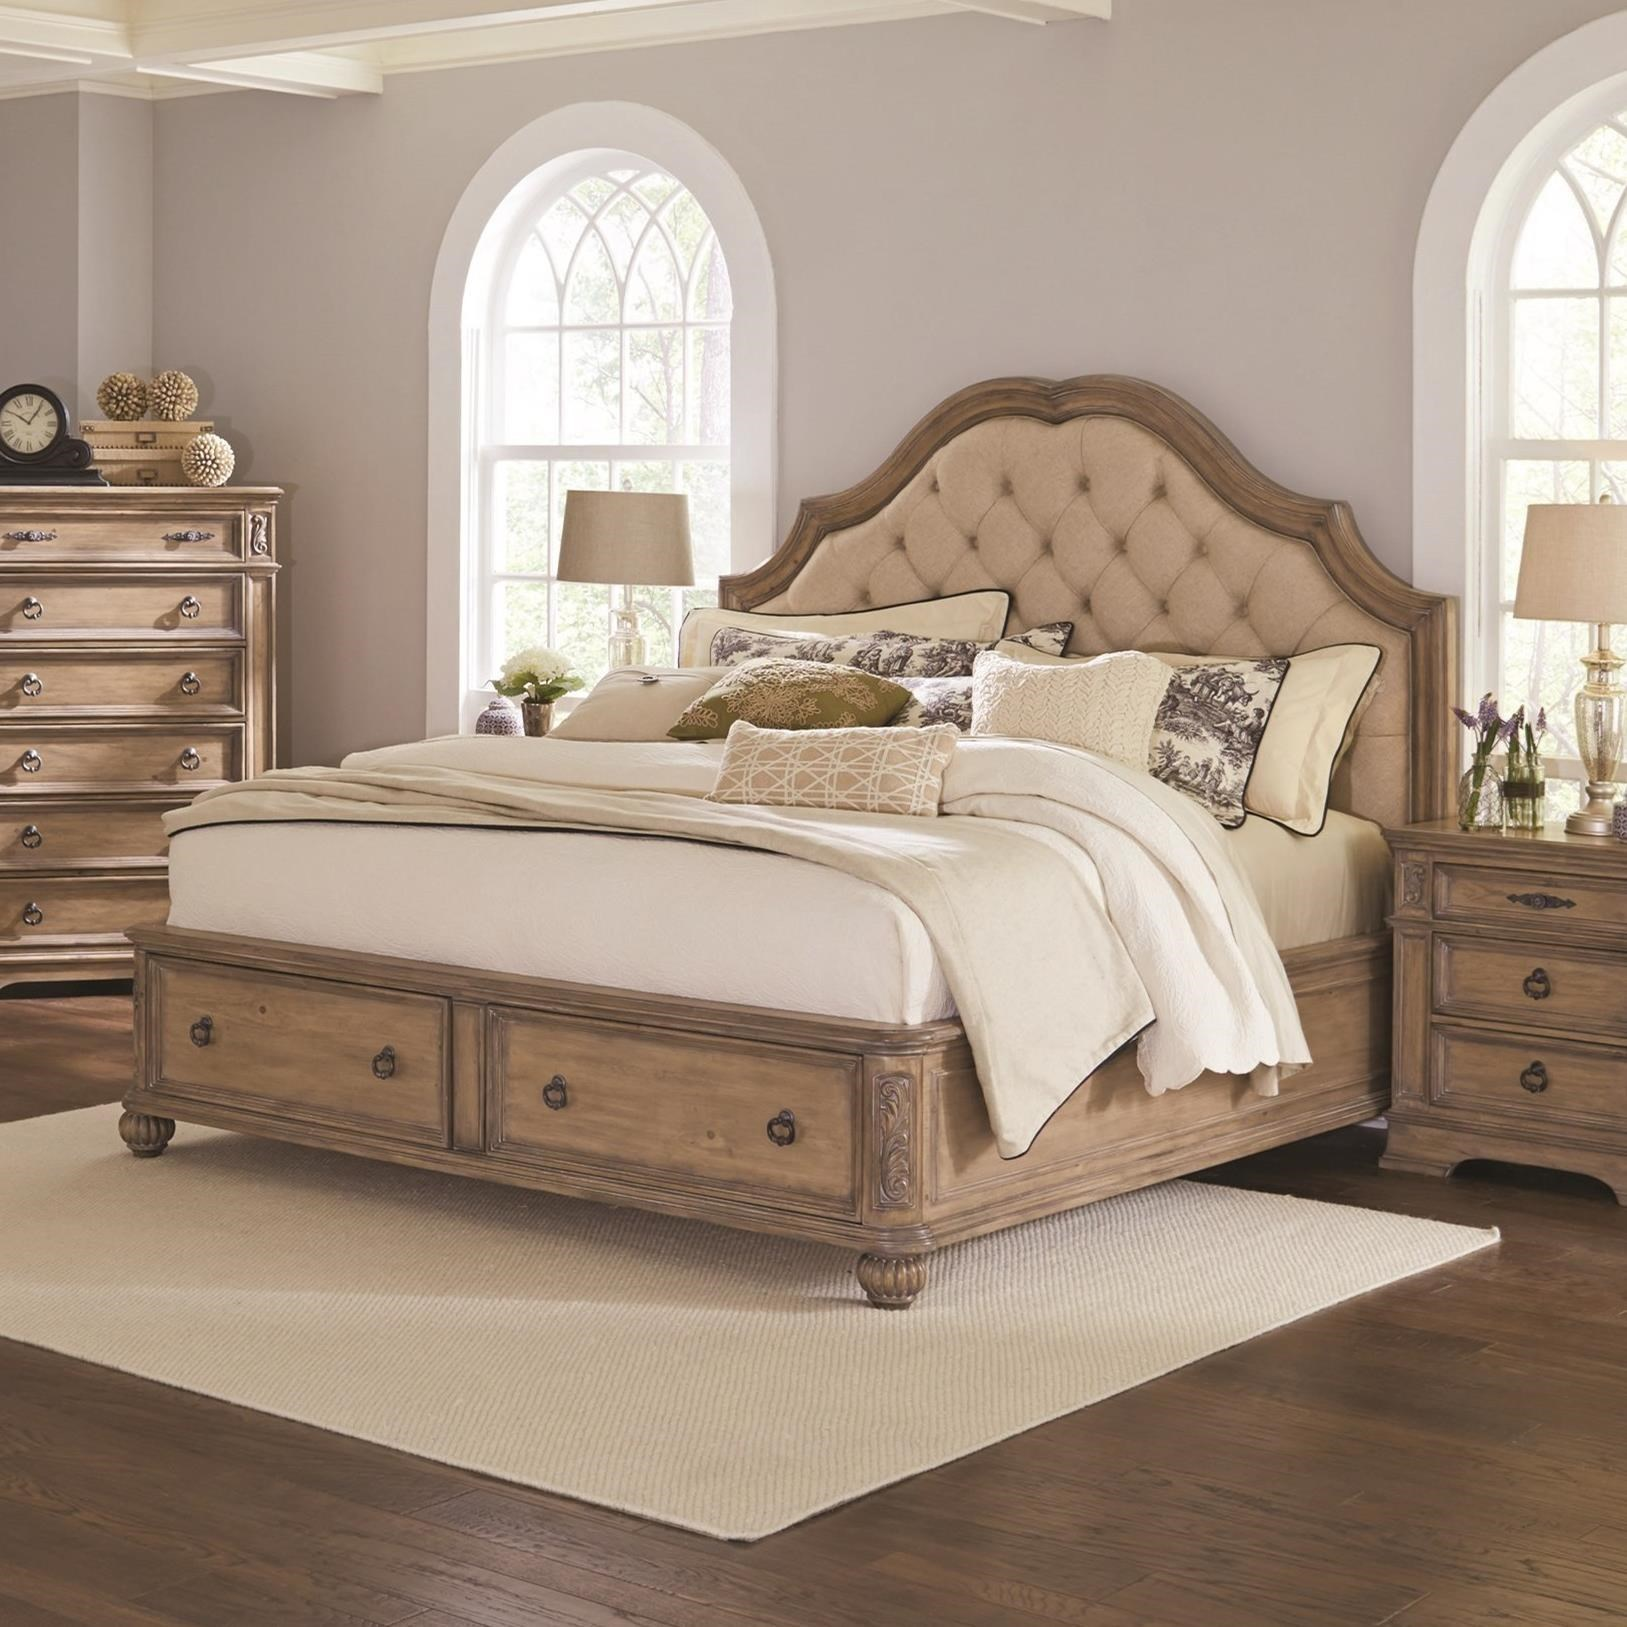 Cal king 4 pc set, illana (bed, dresser, nightstand, mirror)